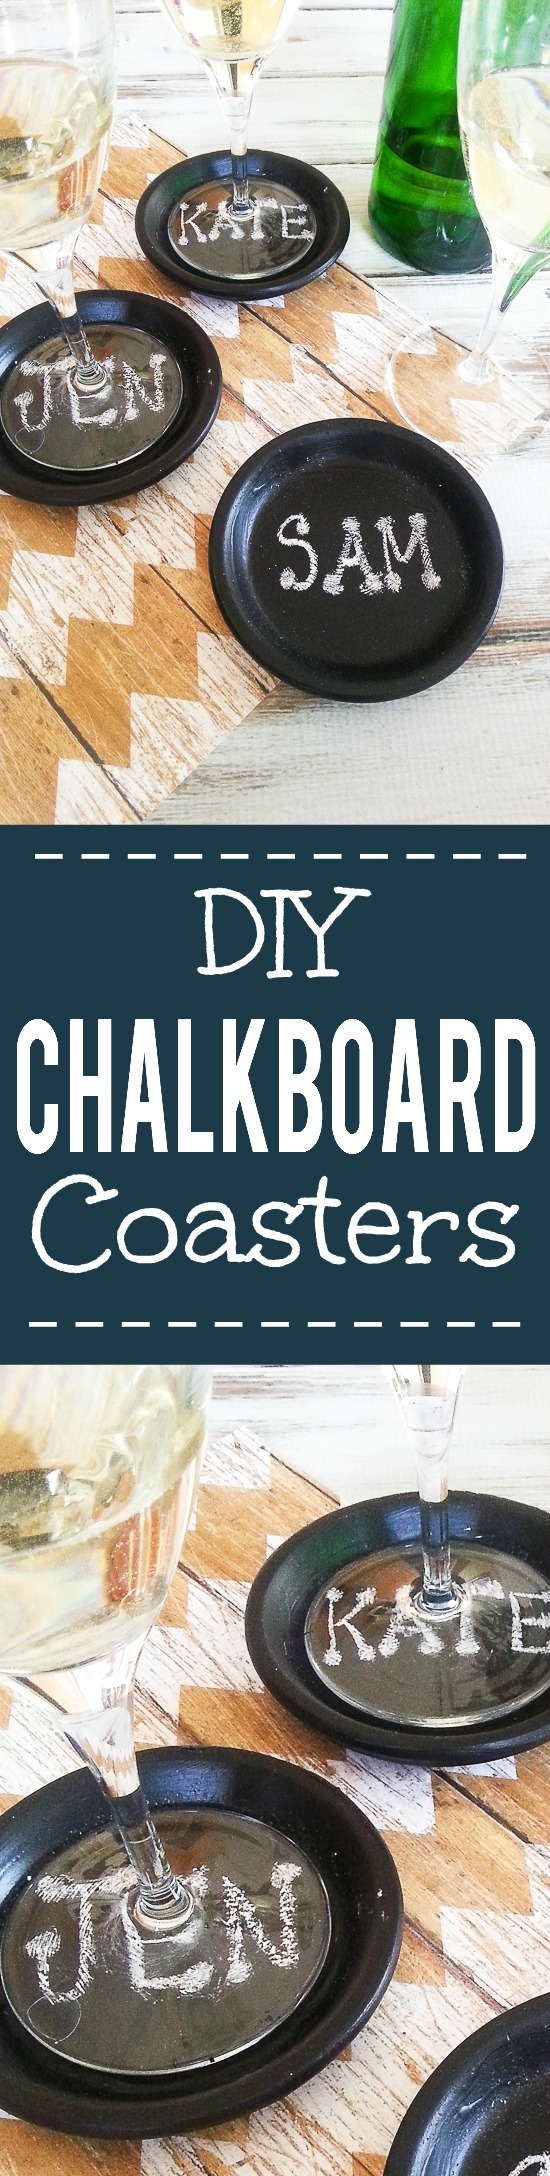 How to Make Easy DIY Chalkboard Coasters { TUTORIAL} - These easy DIY Chalkboard Coasters are perfect for daily use, parties, and even make pretty table settings.  Make these fun coasters with this simple, easy-to-follow tutorial. So cute!